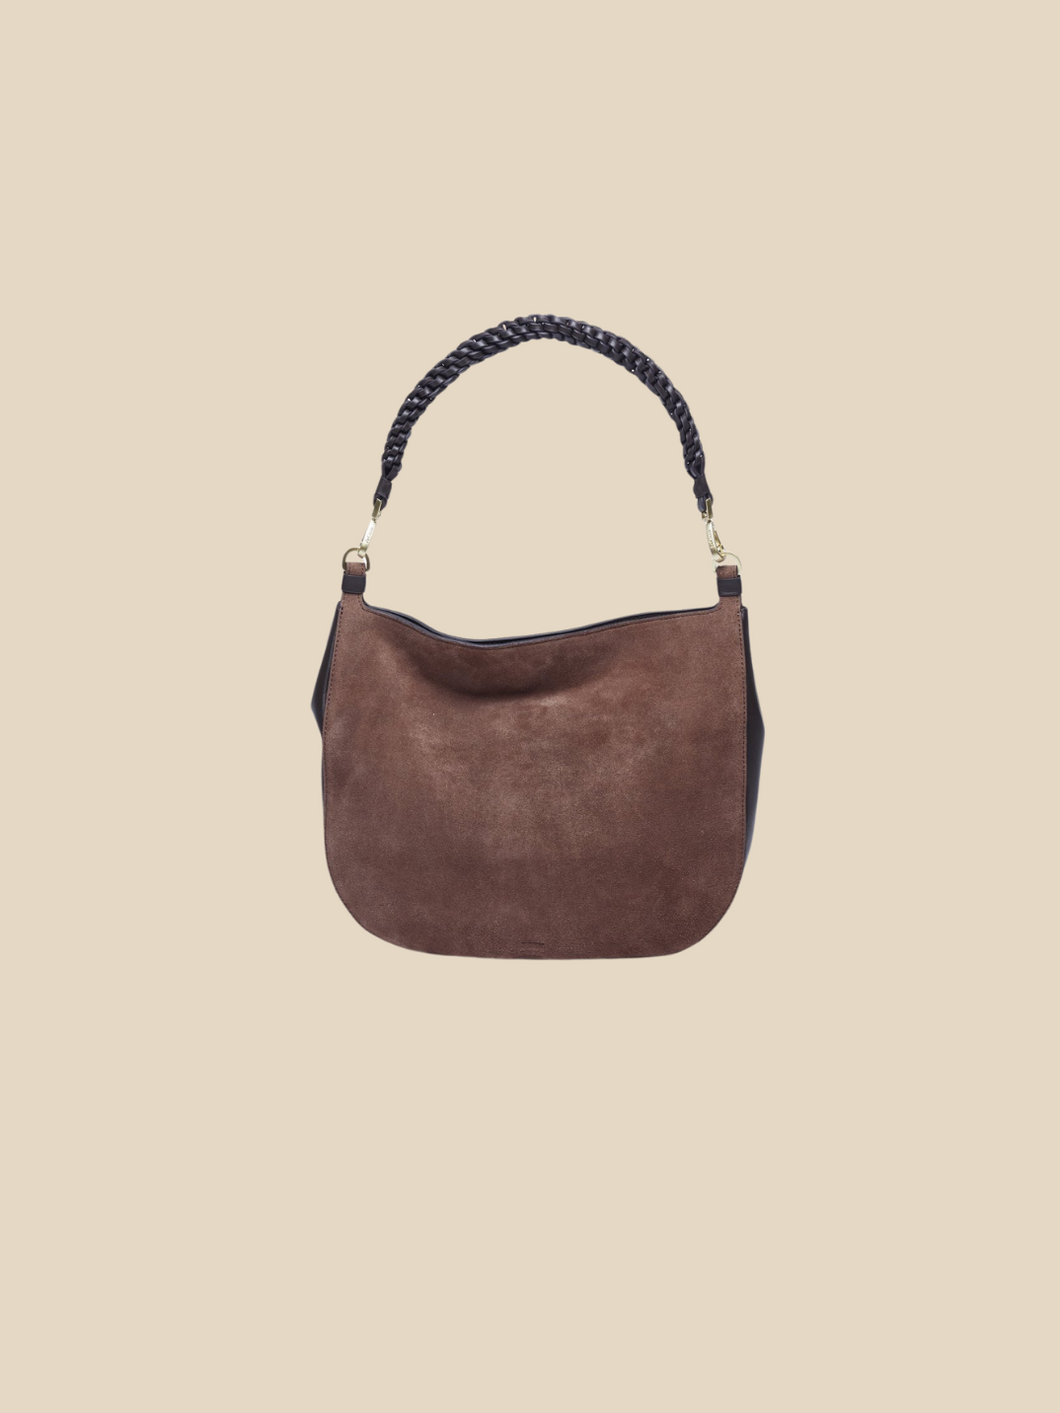 Ril Creed Erica suede bag ethically made from upcycled scrap leather ethical fashion brand based in Hong Kong